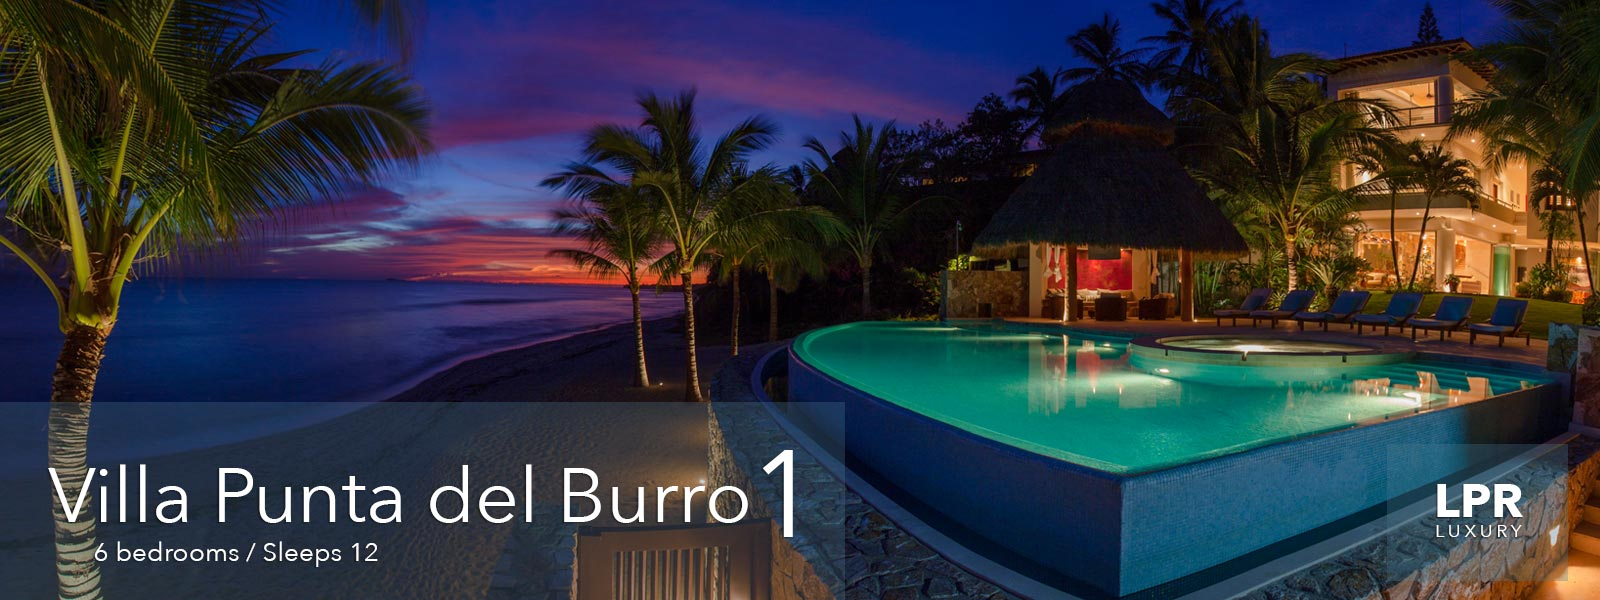 Villa Punta del Burro 1 - Punta de Mita - Mexico Luxury Vacation Rentals and Real Estate